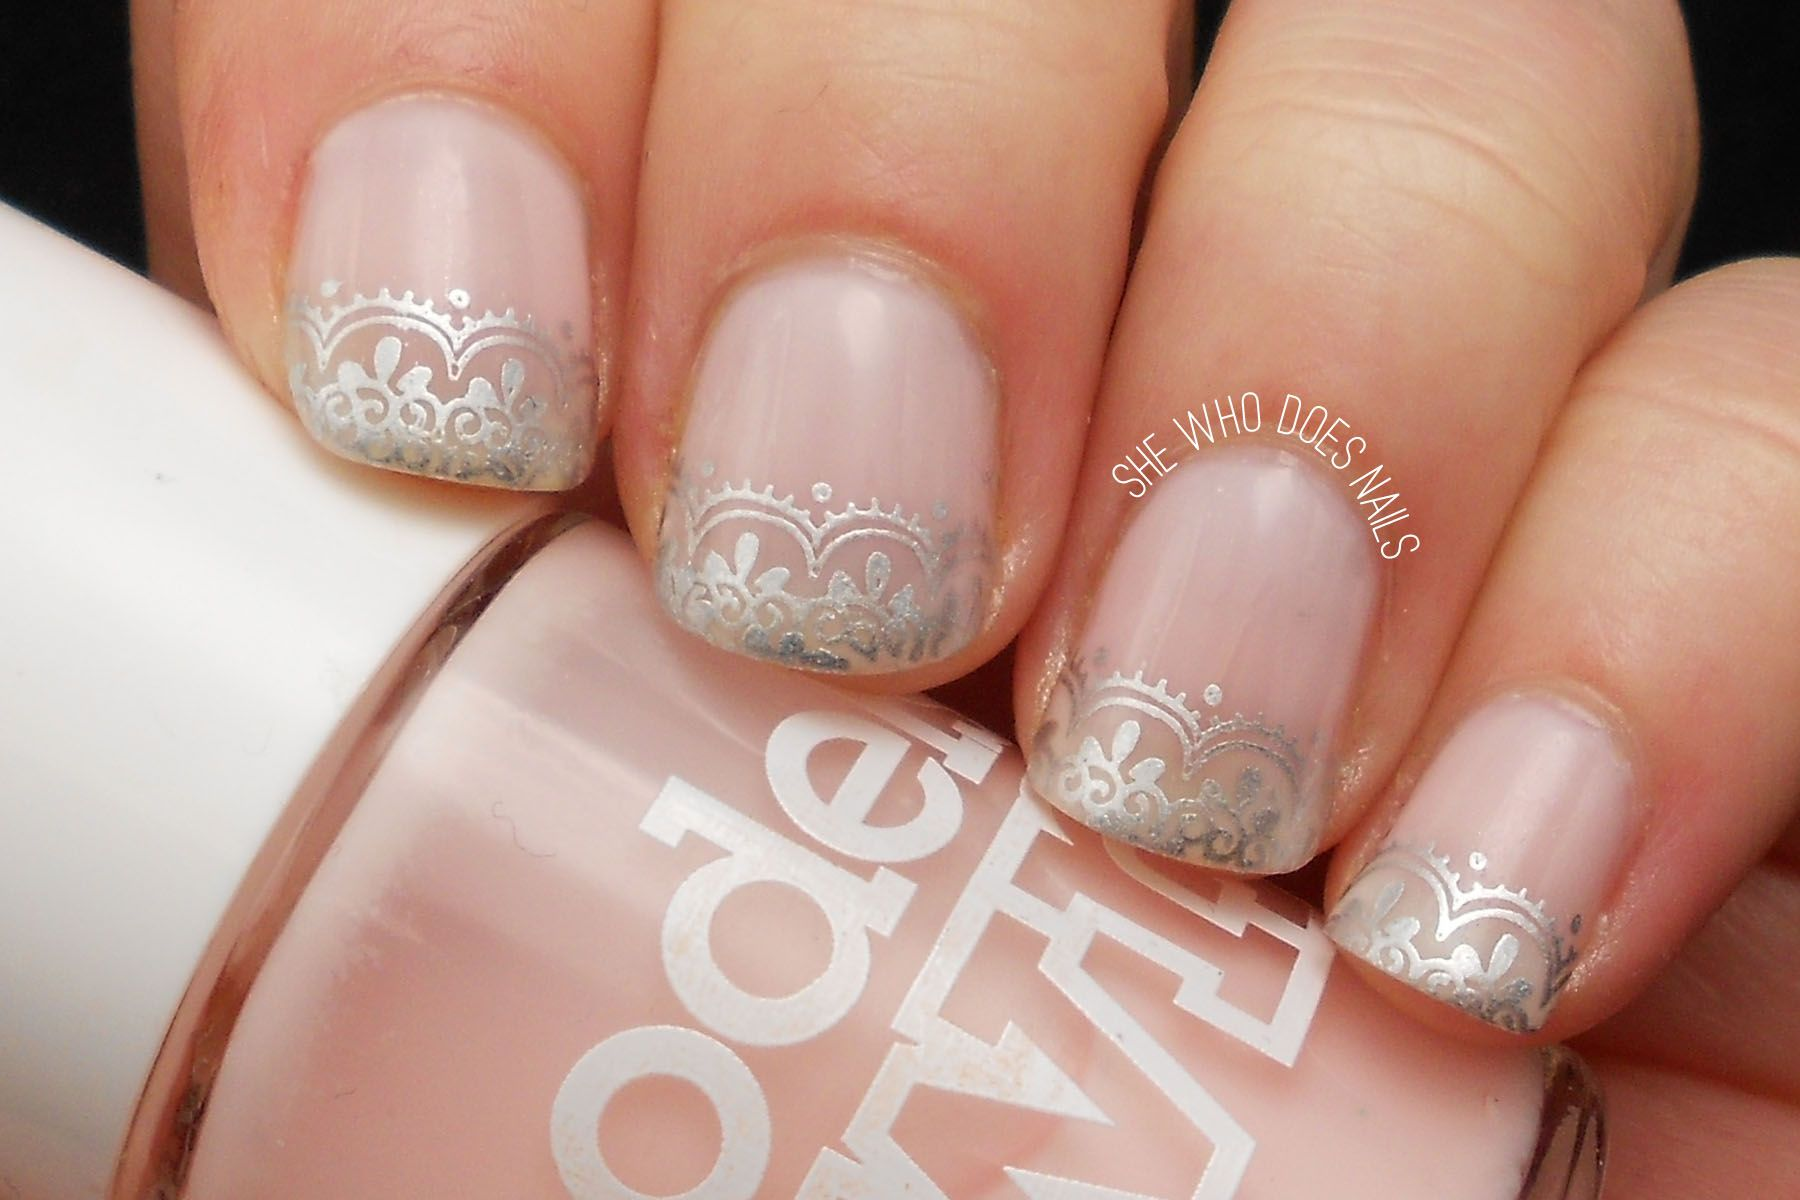 Bridal Nail Art White Lace Effect Article Google Image Result For Http Www Shewhodoesnails Wp Content